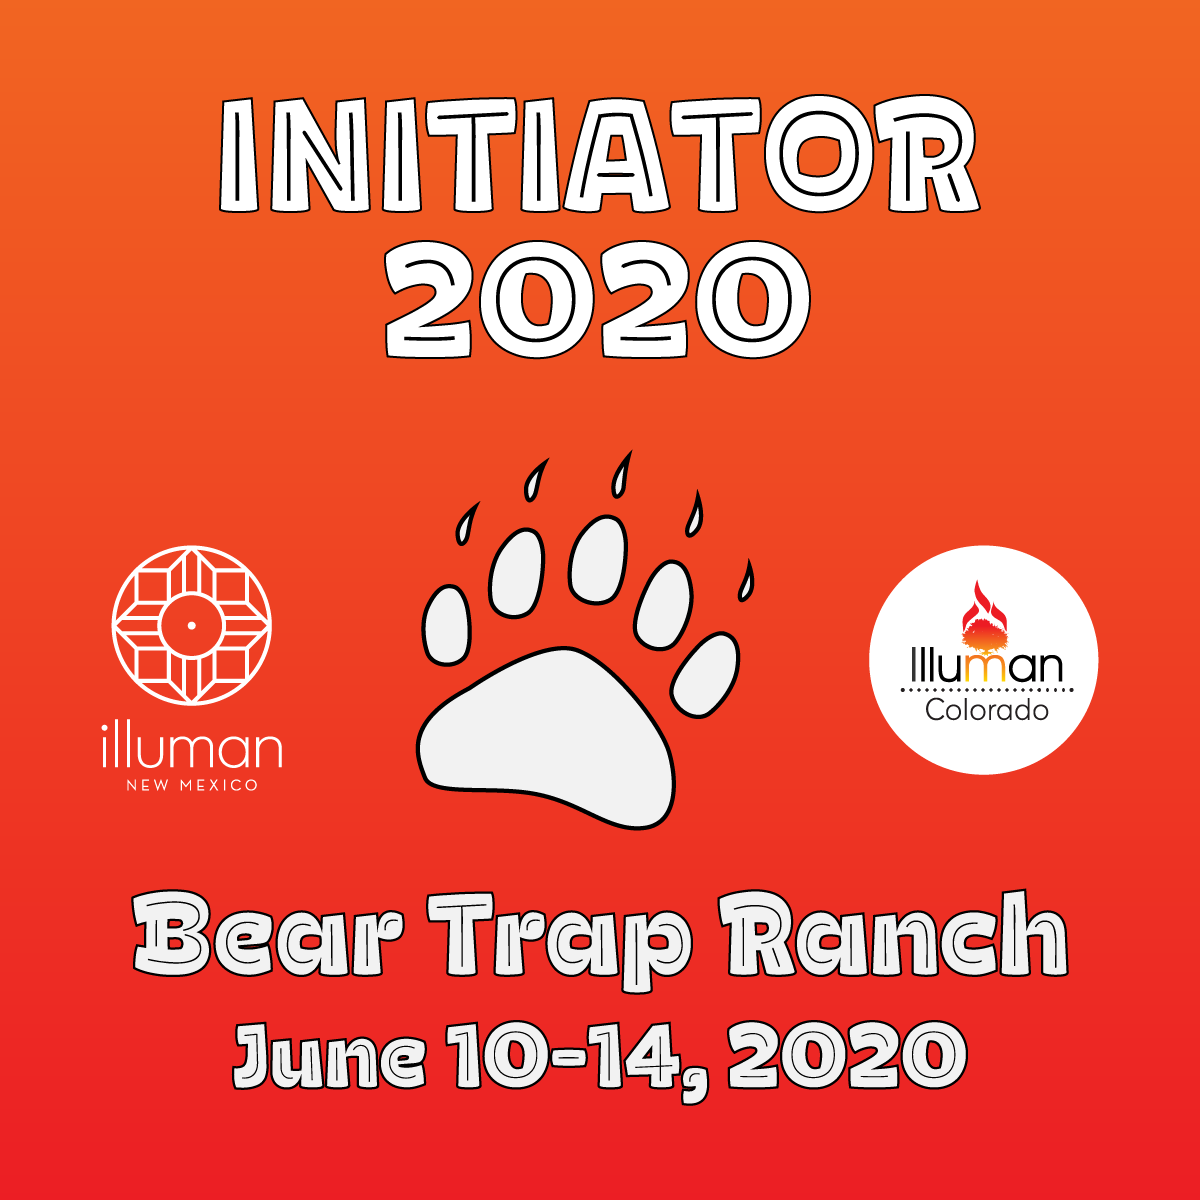 2020 Initiator Application